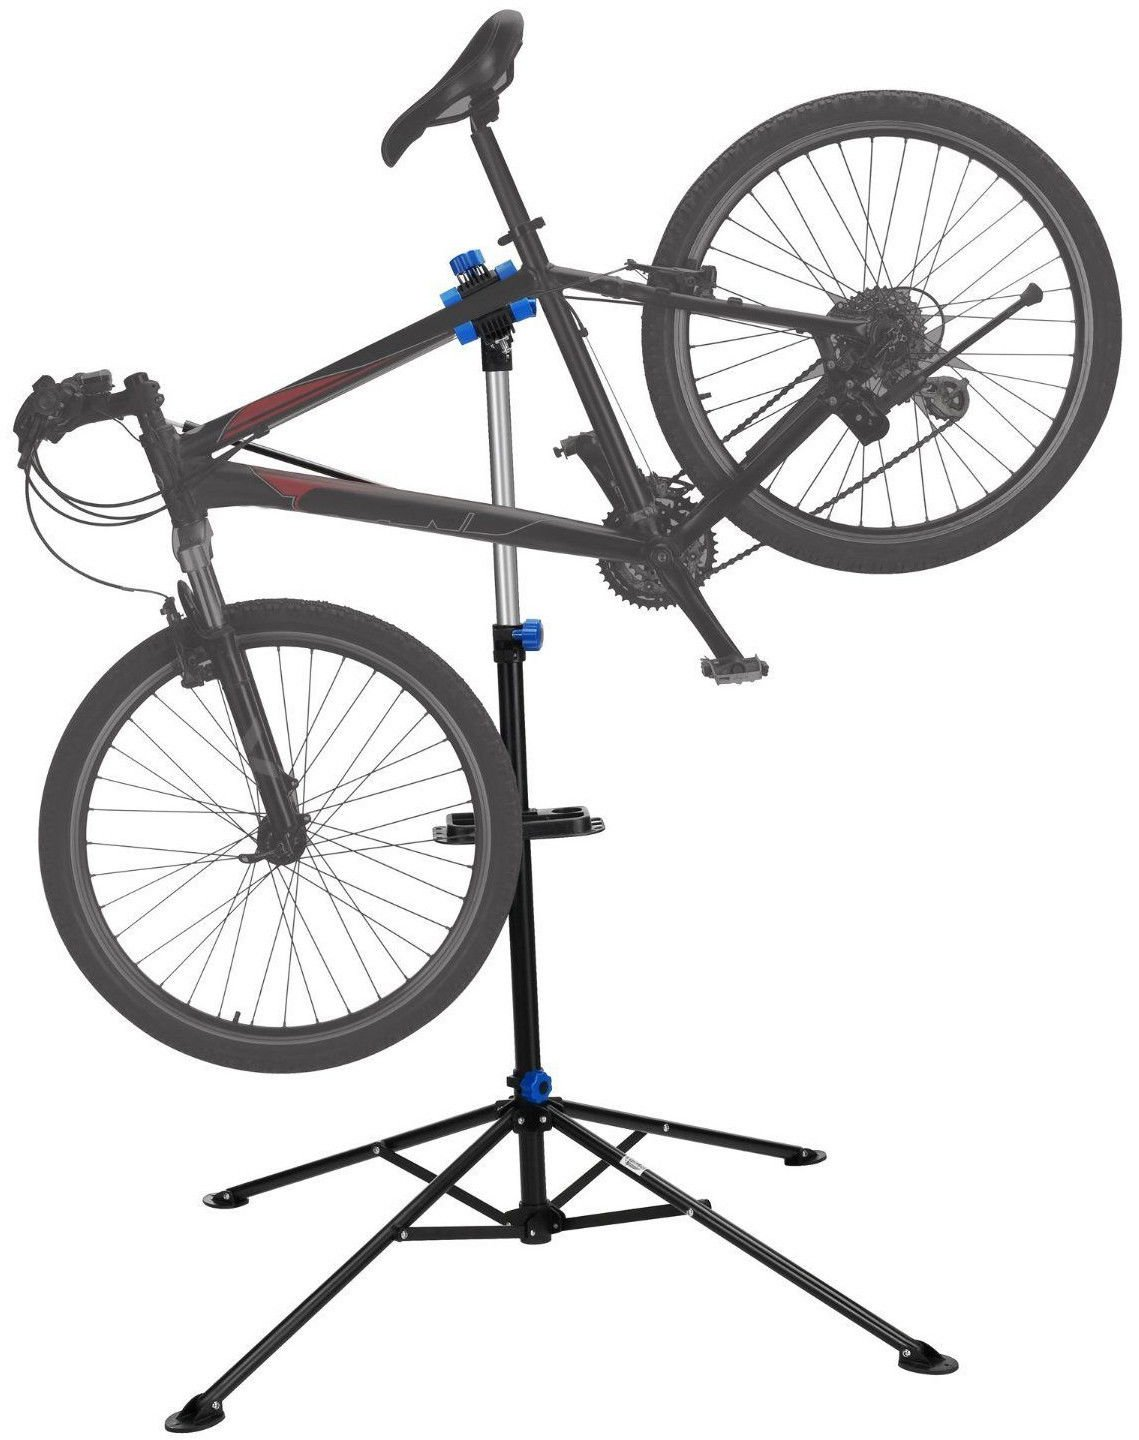 Products 2008-PRO-STAND Pro Bicycle Adjustable Repair Stand by Alitop (Image #2)